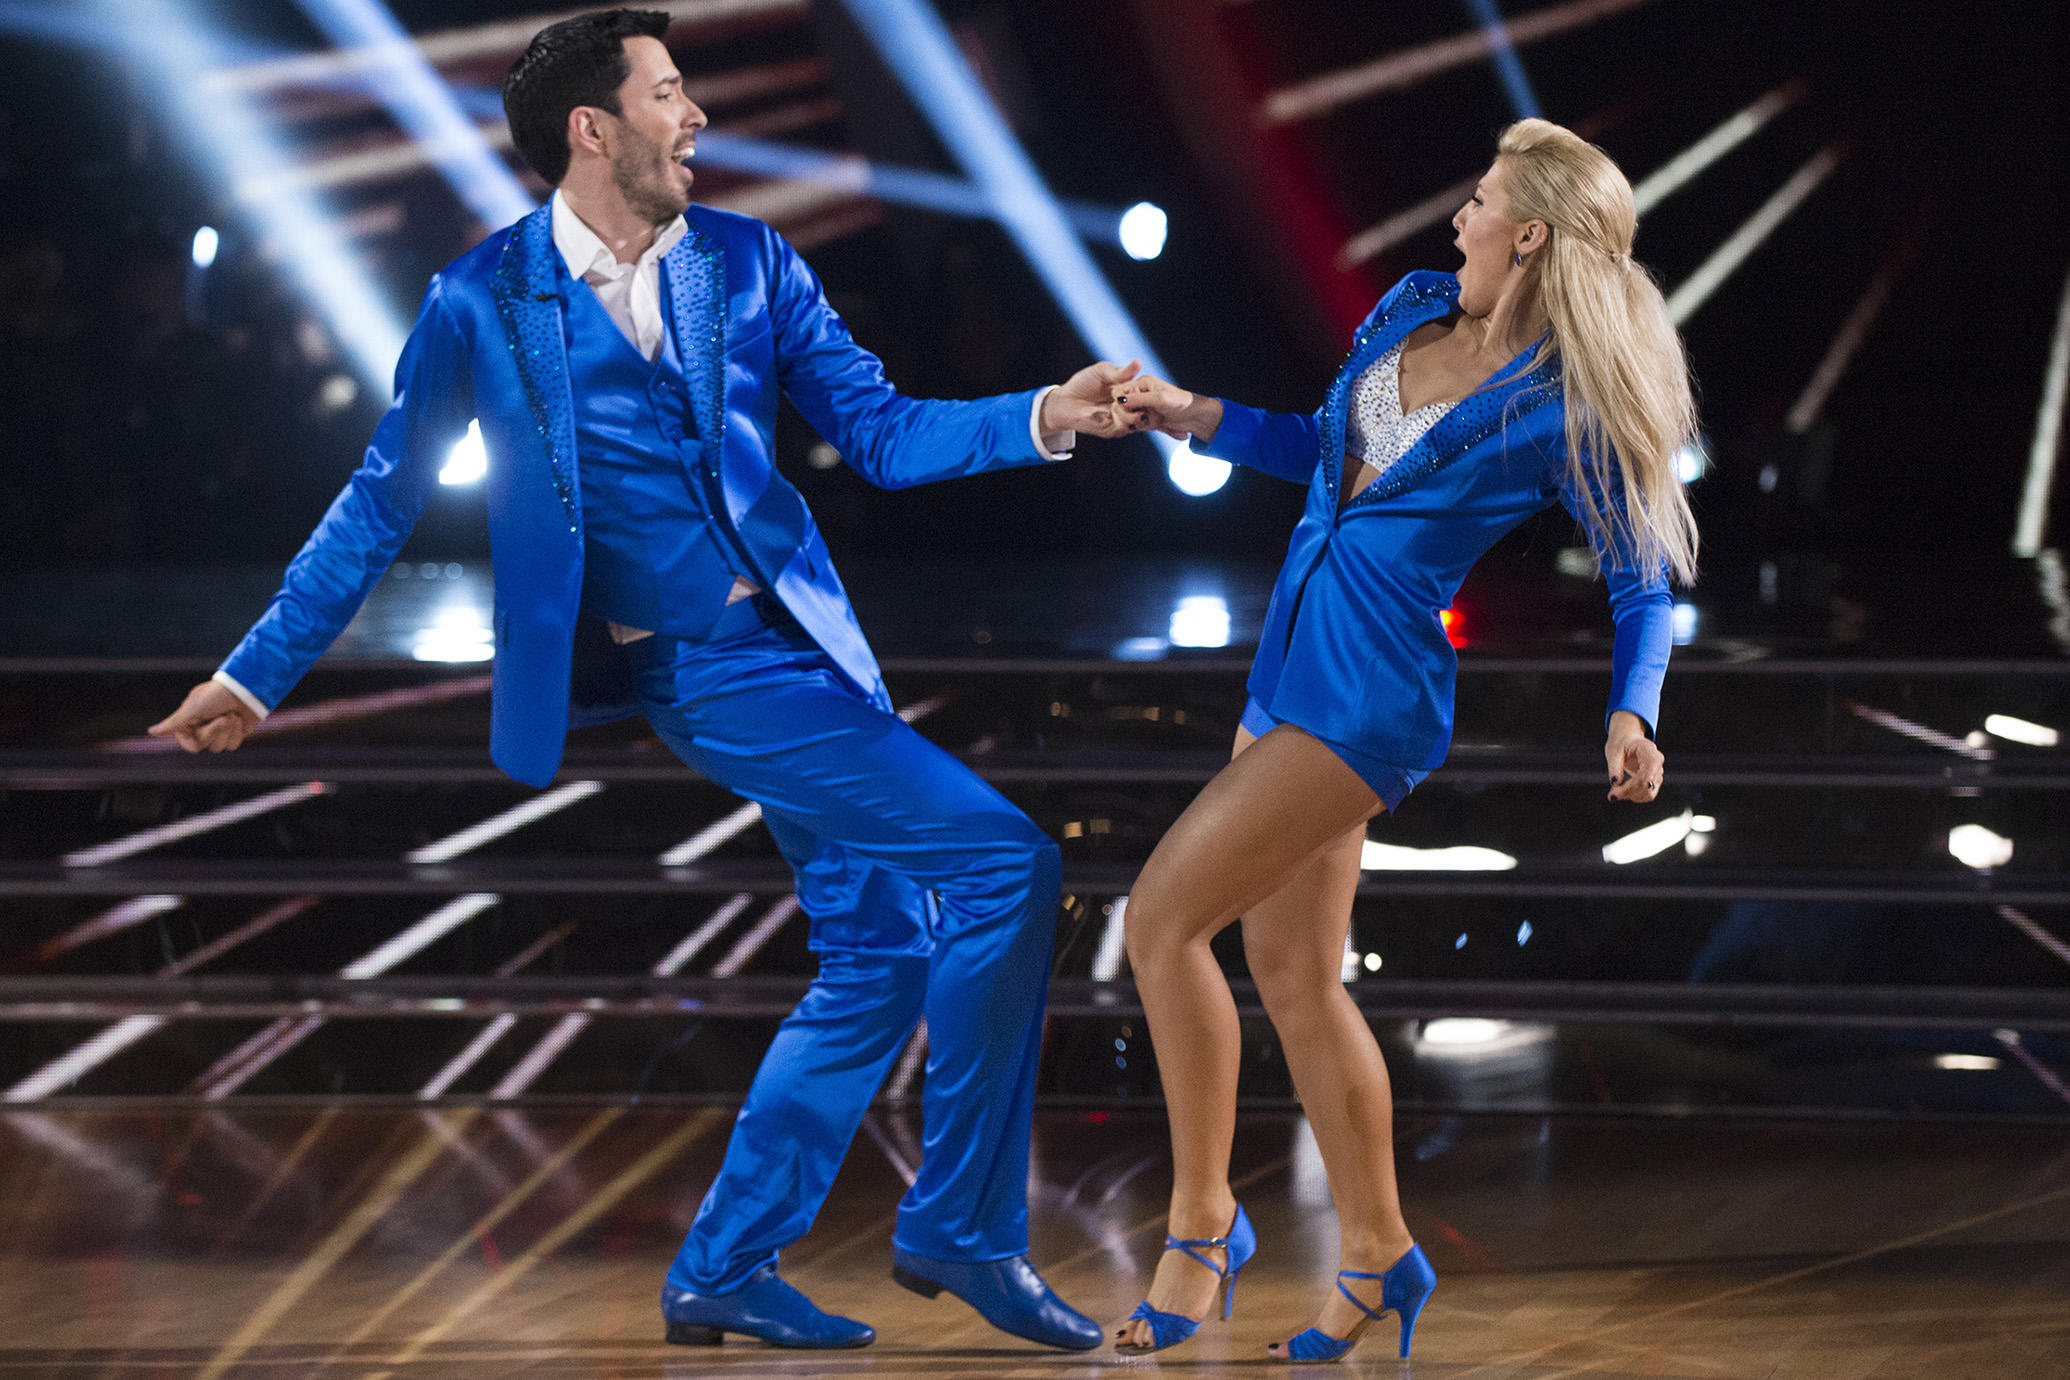 Drew Scott and Emma Slate dancing in blue costumes